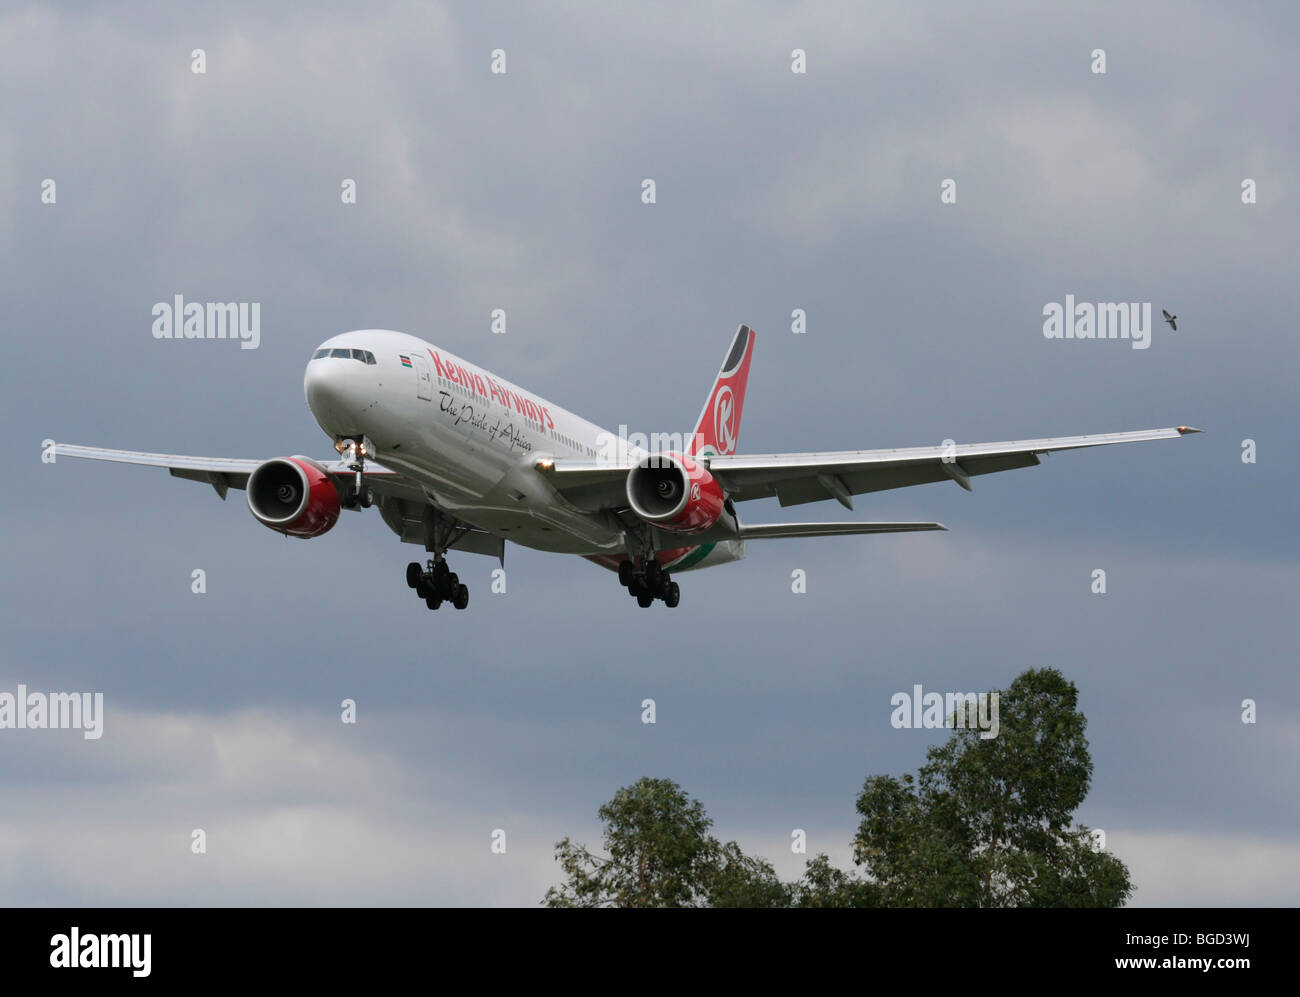 Kenya Airways Boeing 777-200ER on arrival - Stock Image